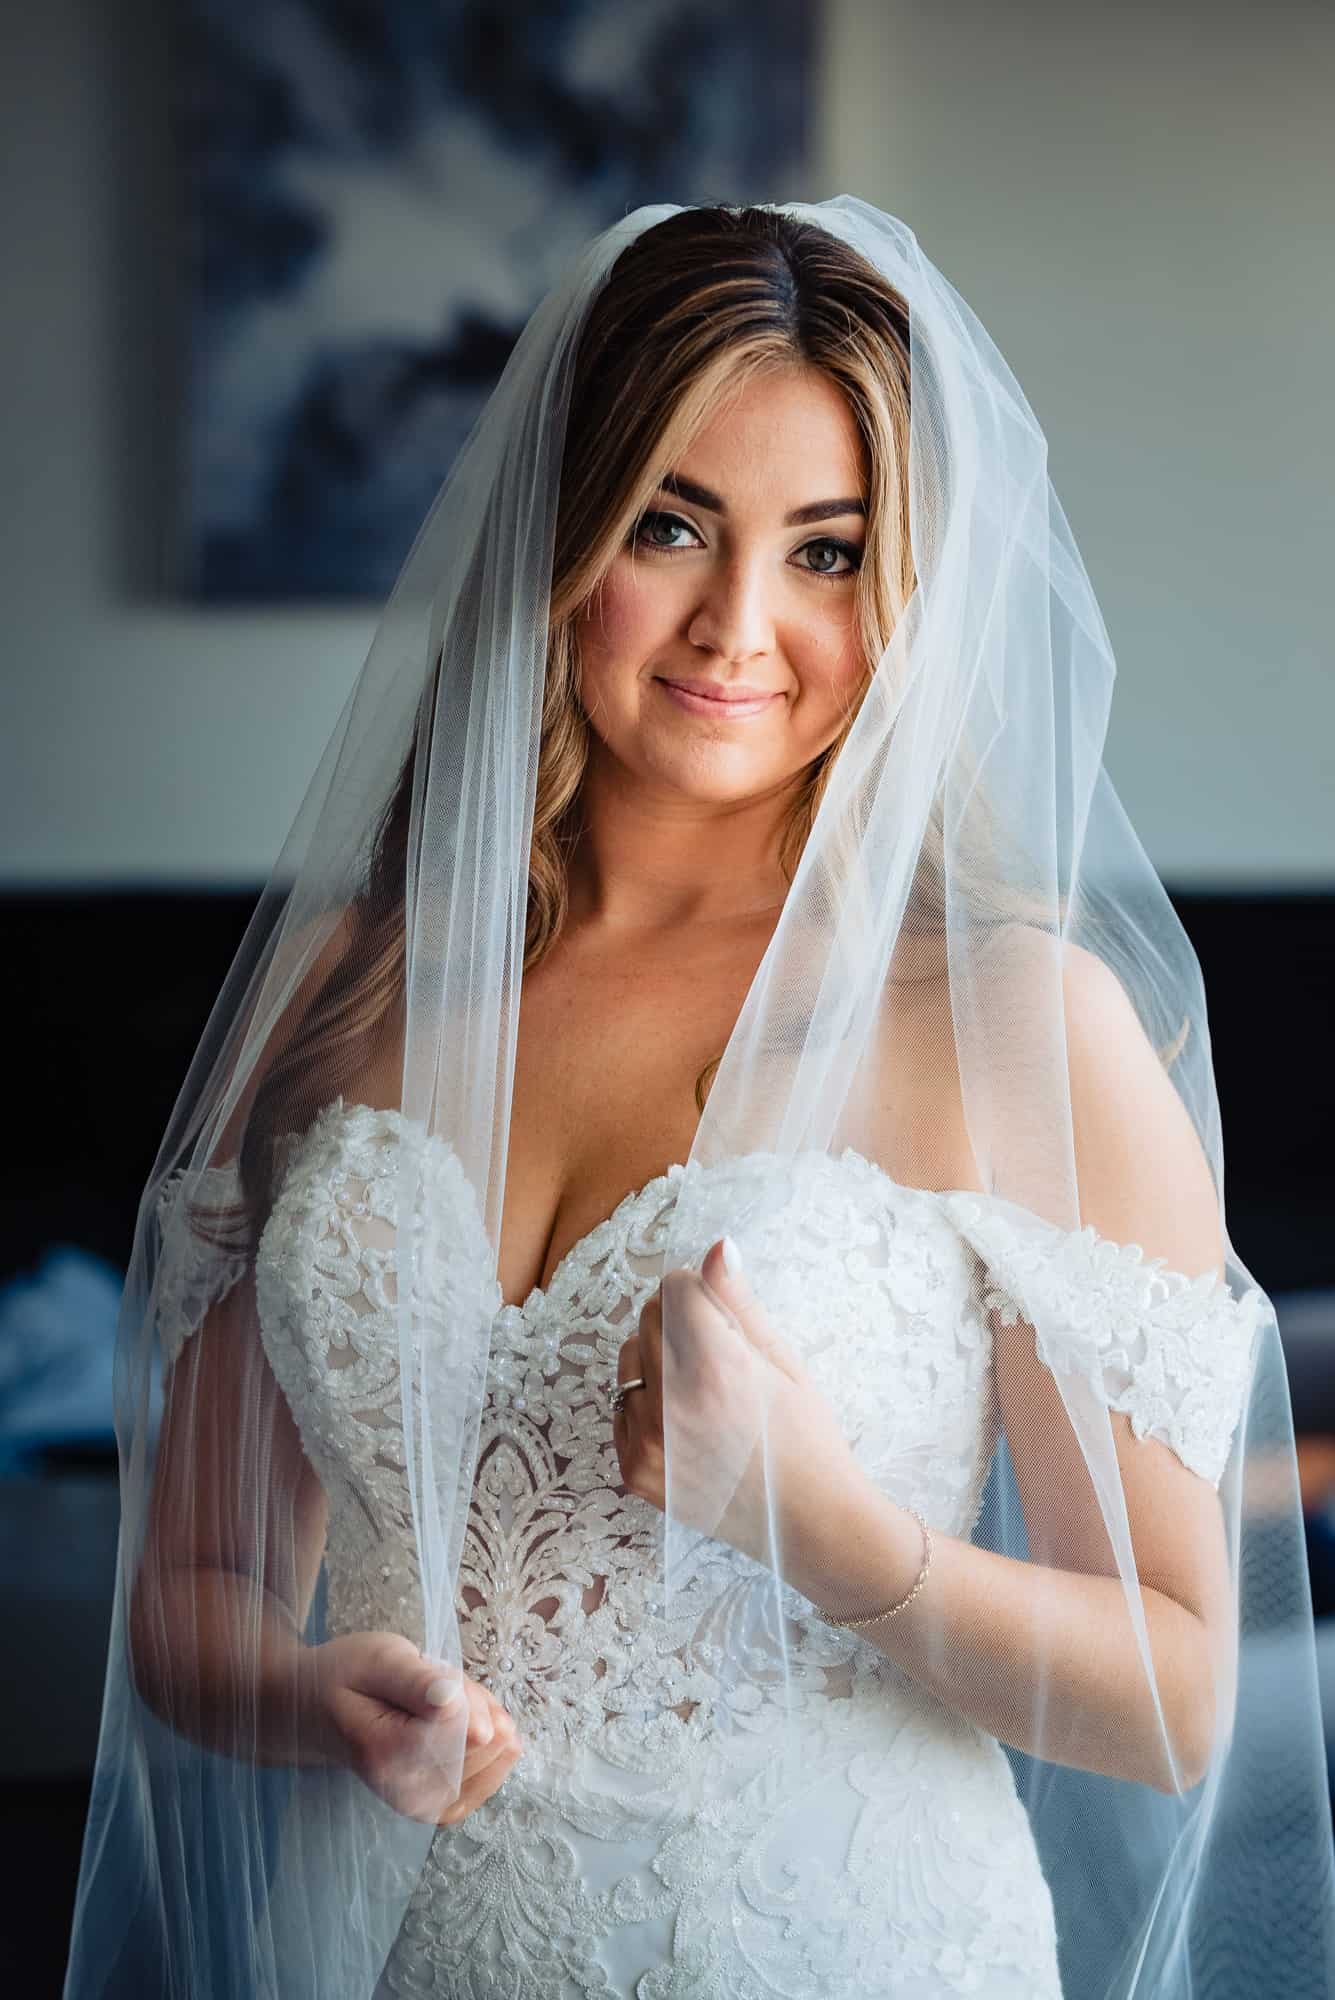 image of bride posing holding veil, hair and makeup by C.E.Facial Artistry